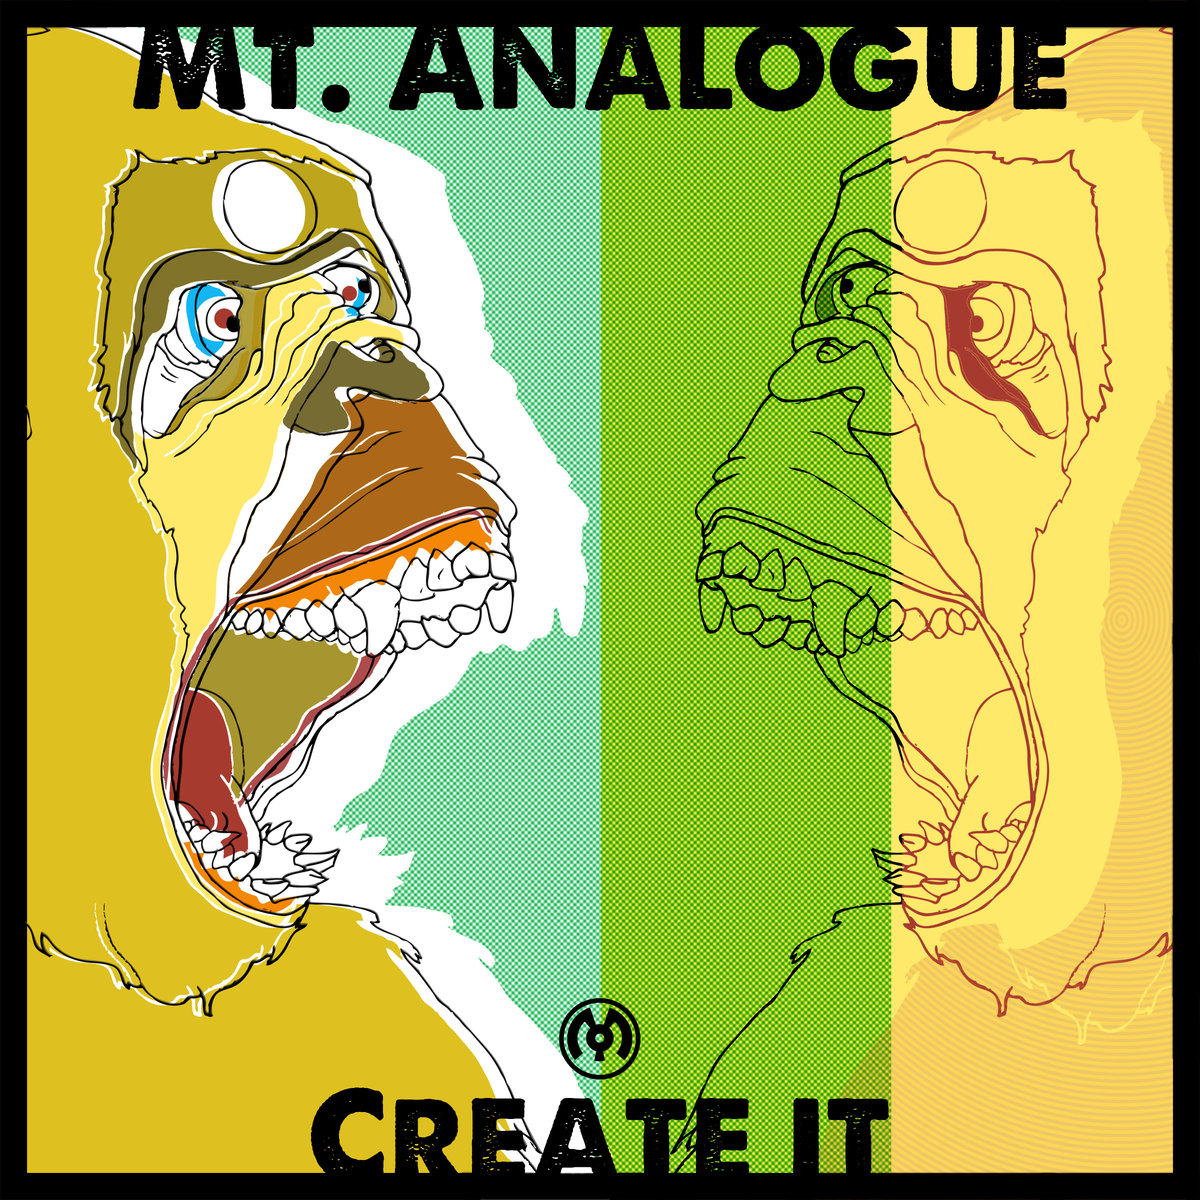 Mt. Analogue - Create It